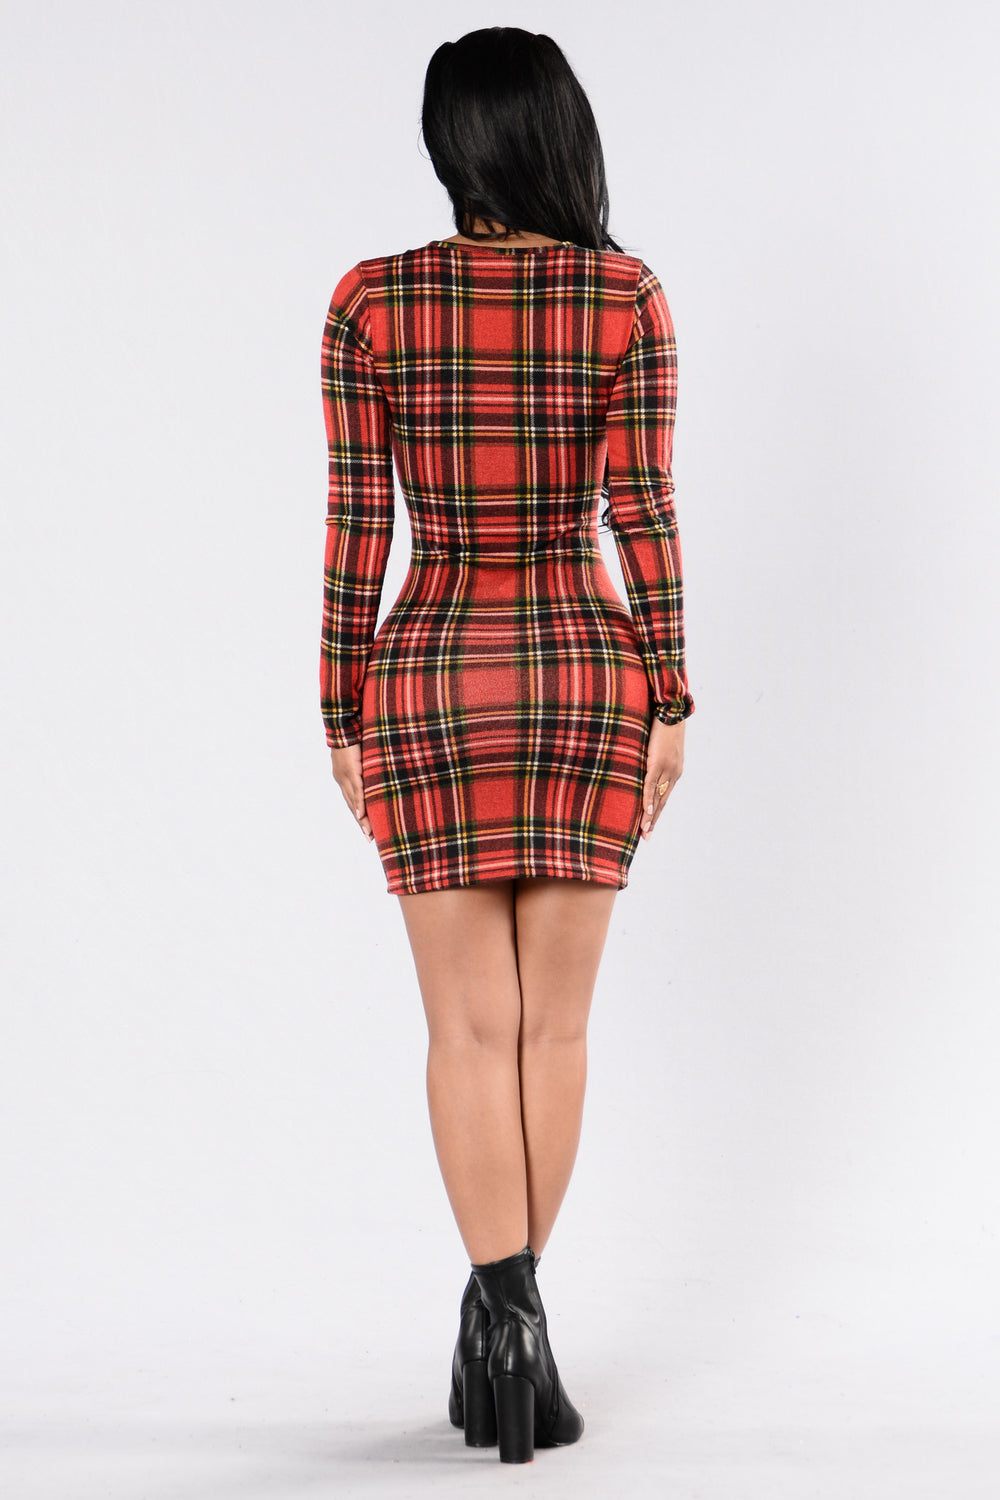 Cabin Fever Dress - Red